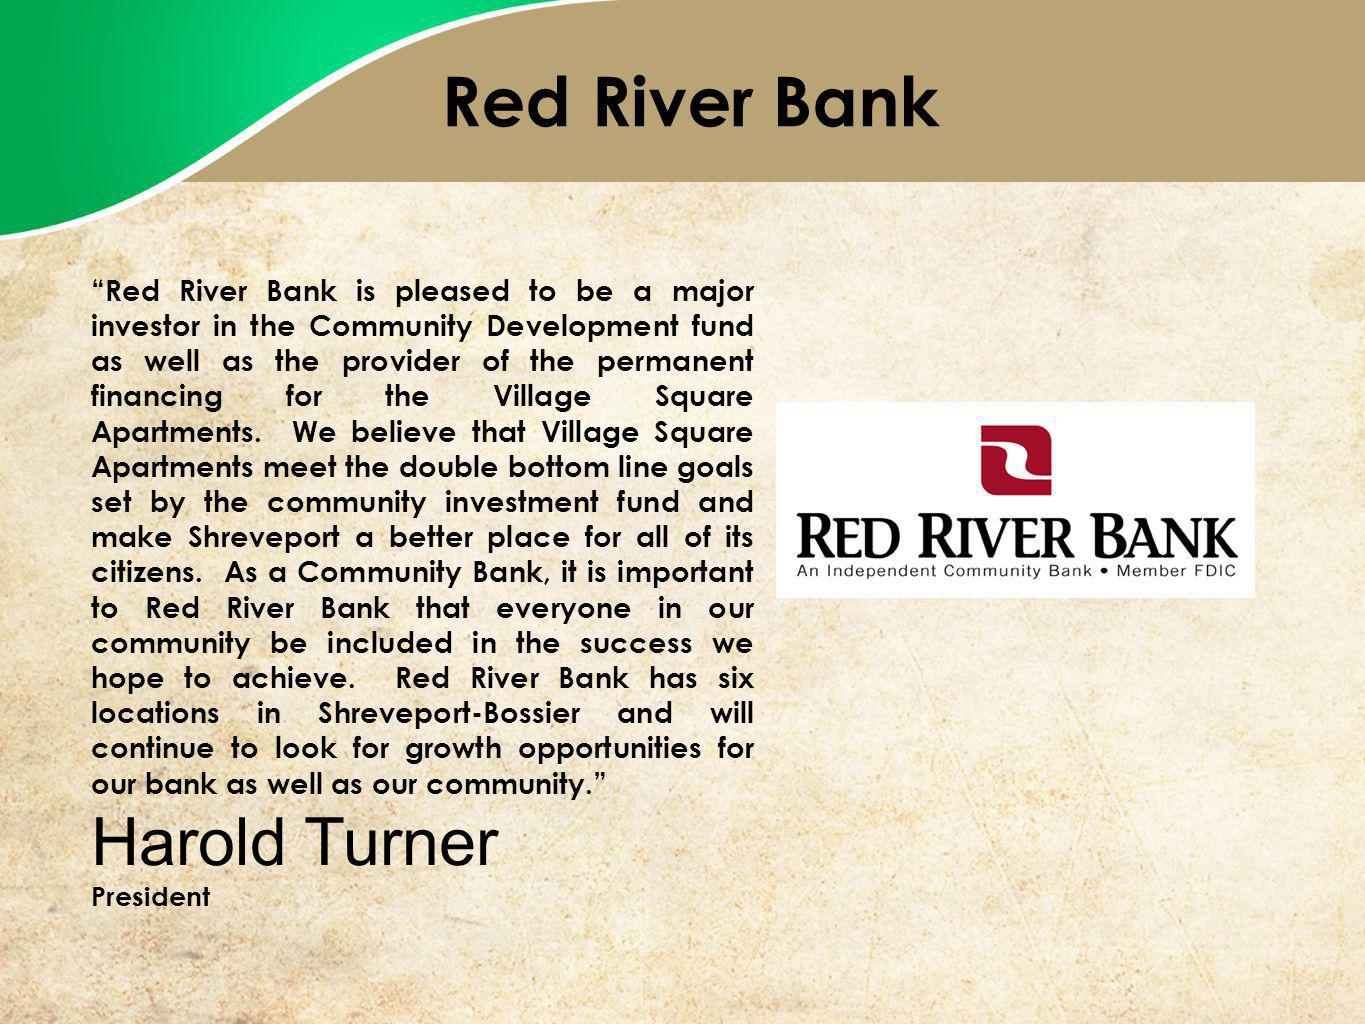 Red River Bank is pleased to be a major investor in the Community Development fund as well as the provider of the permanent financing for the Village Square Apartments.